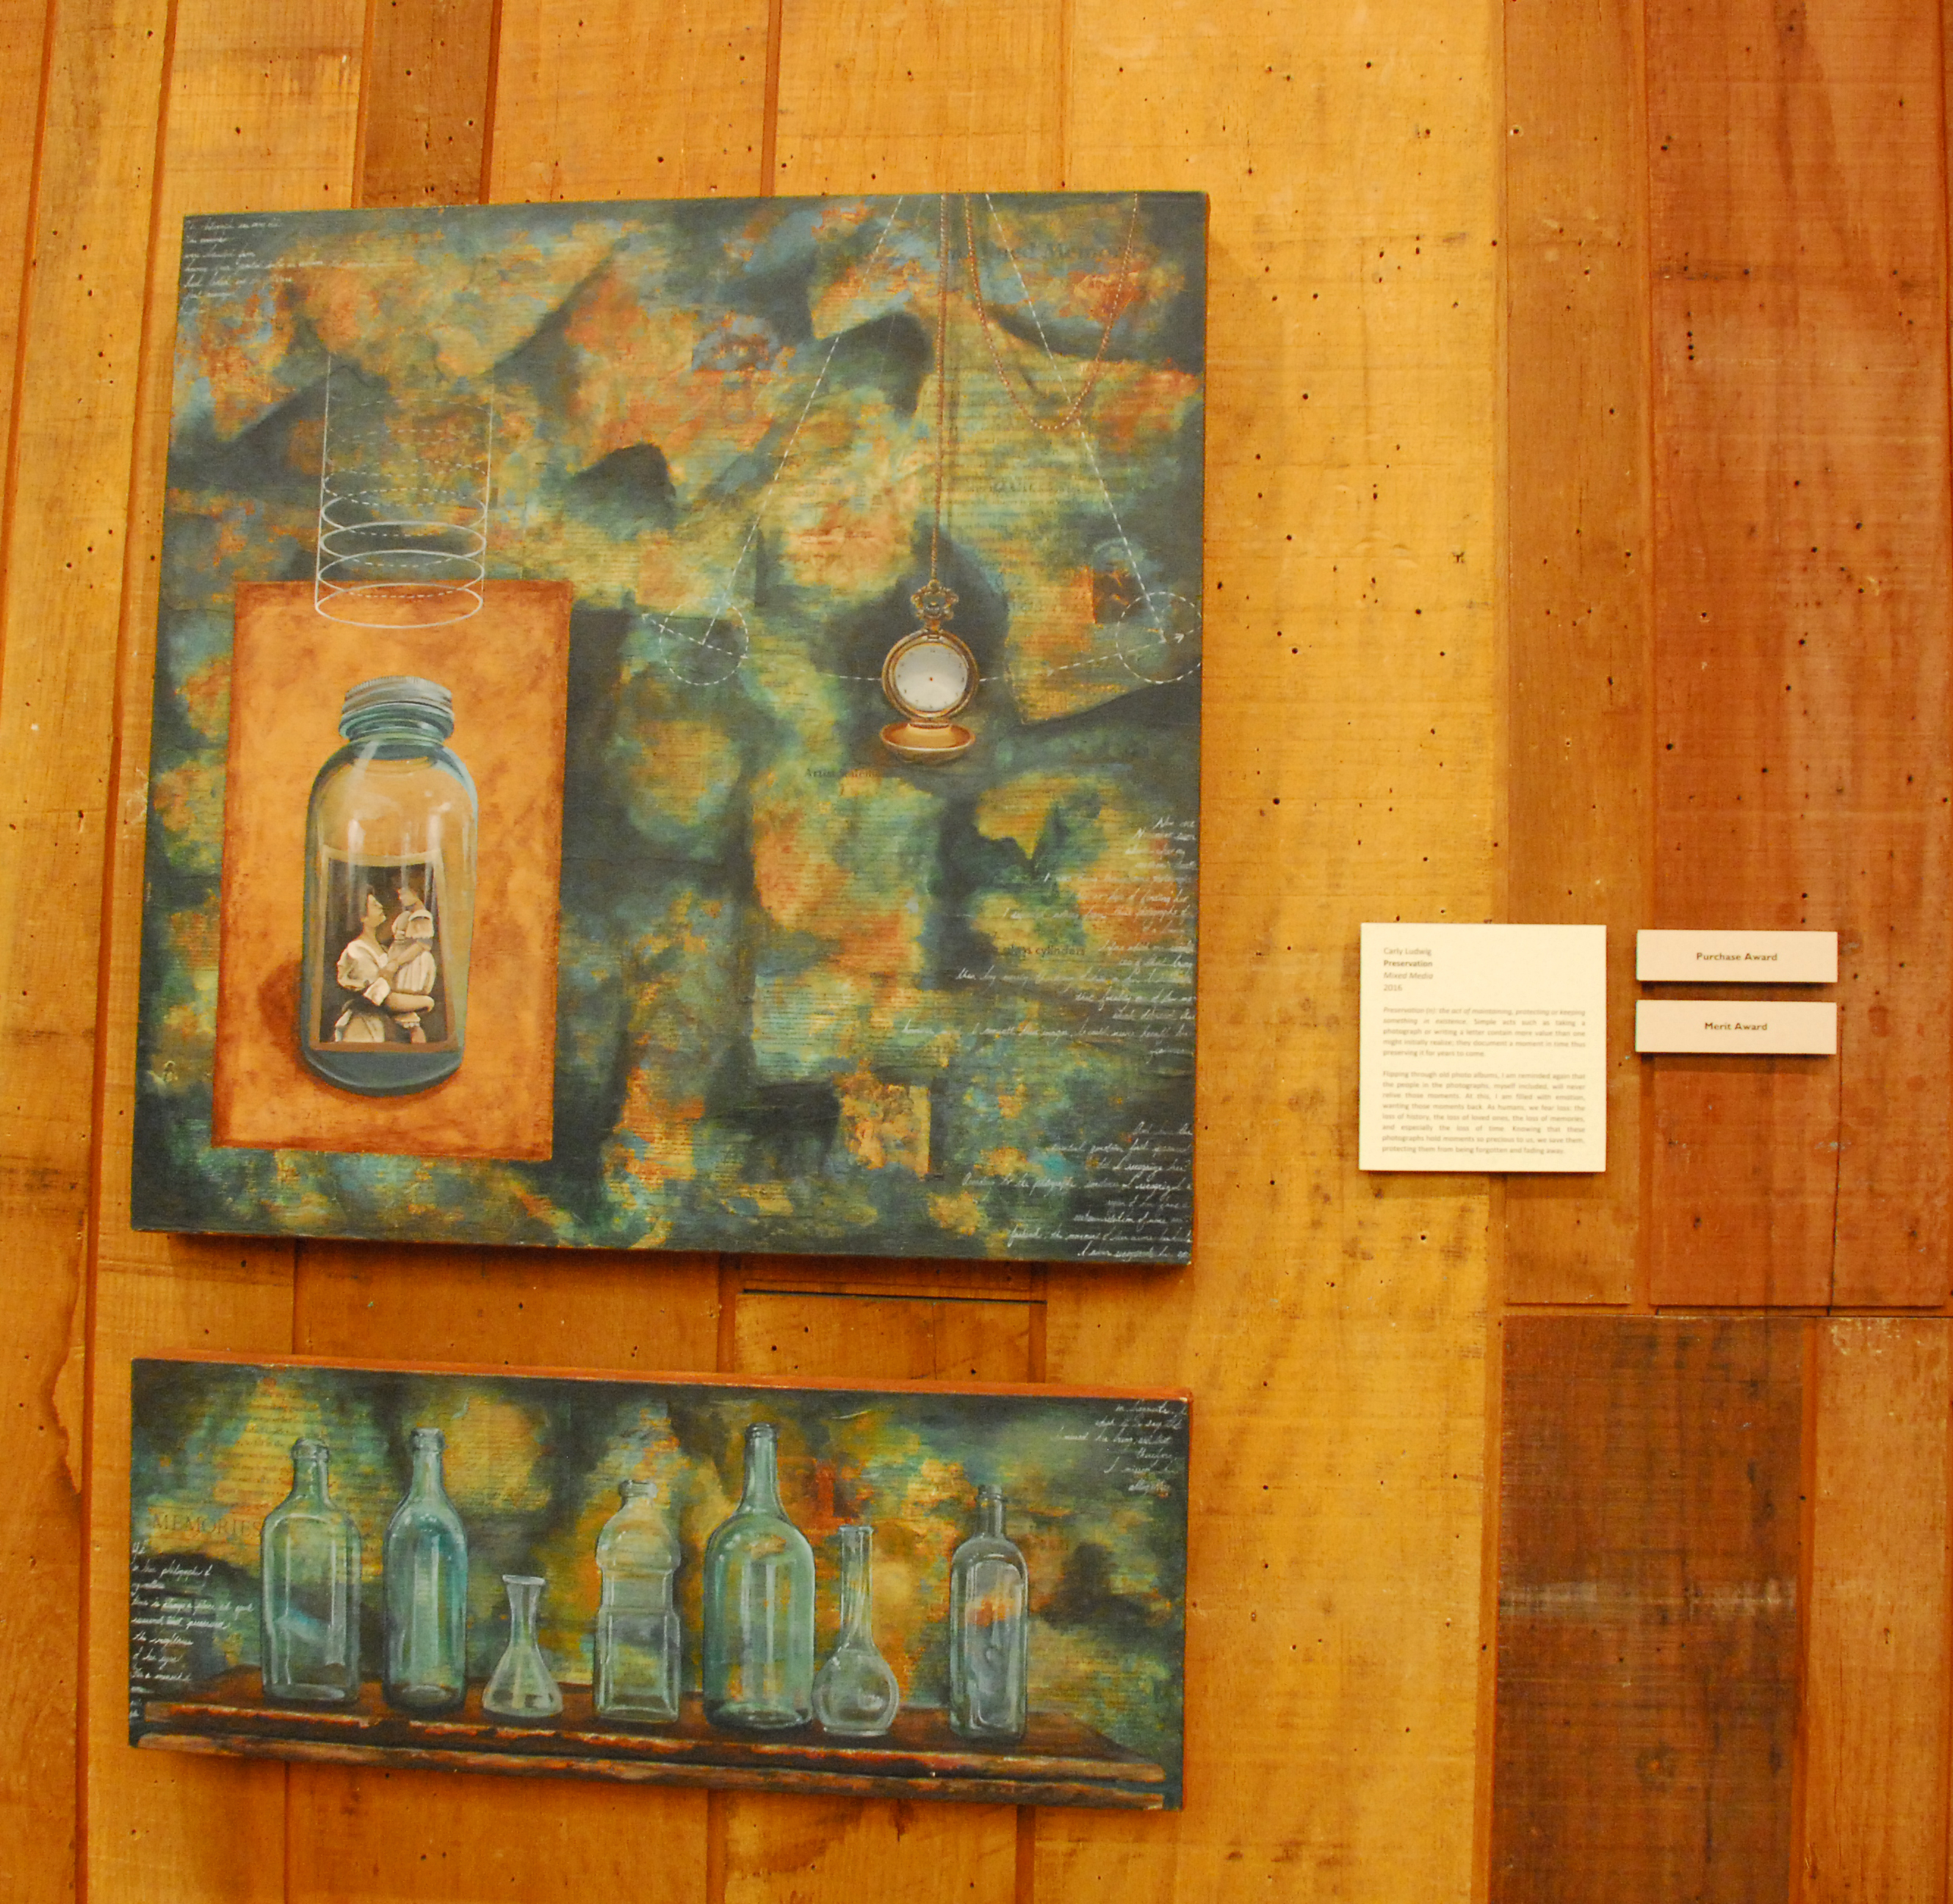 Preservation by Carly Ludwig received Merit & Purchase Awards